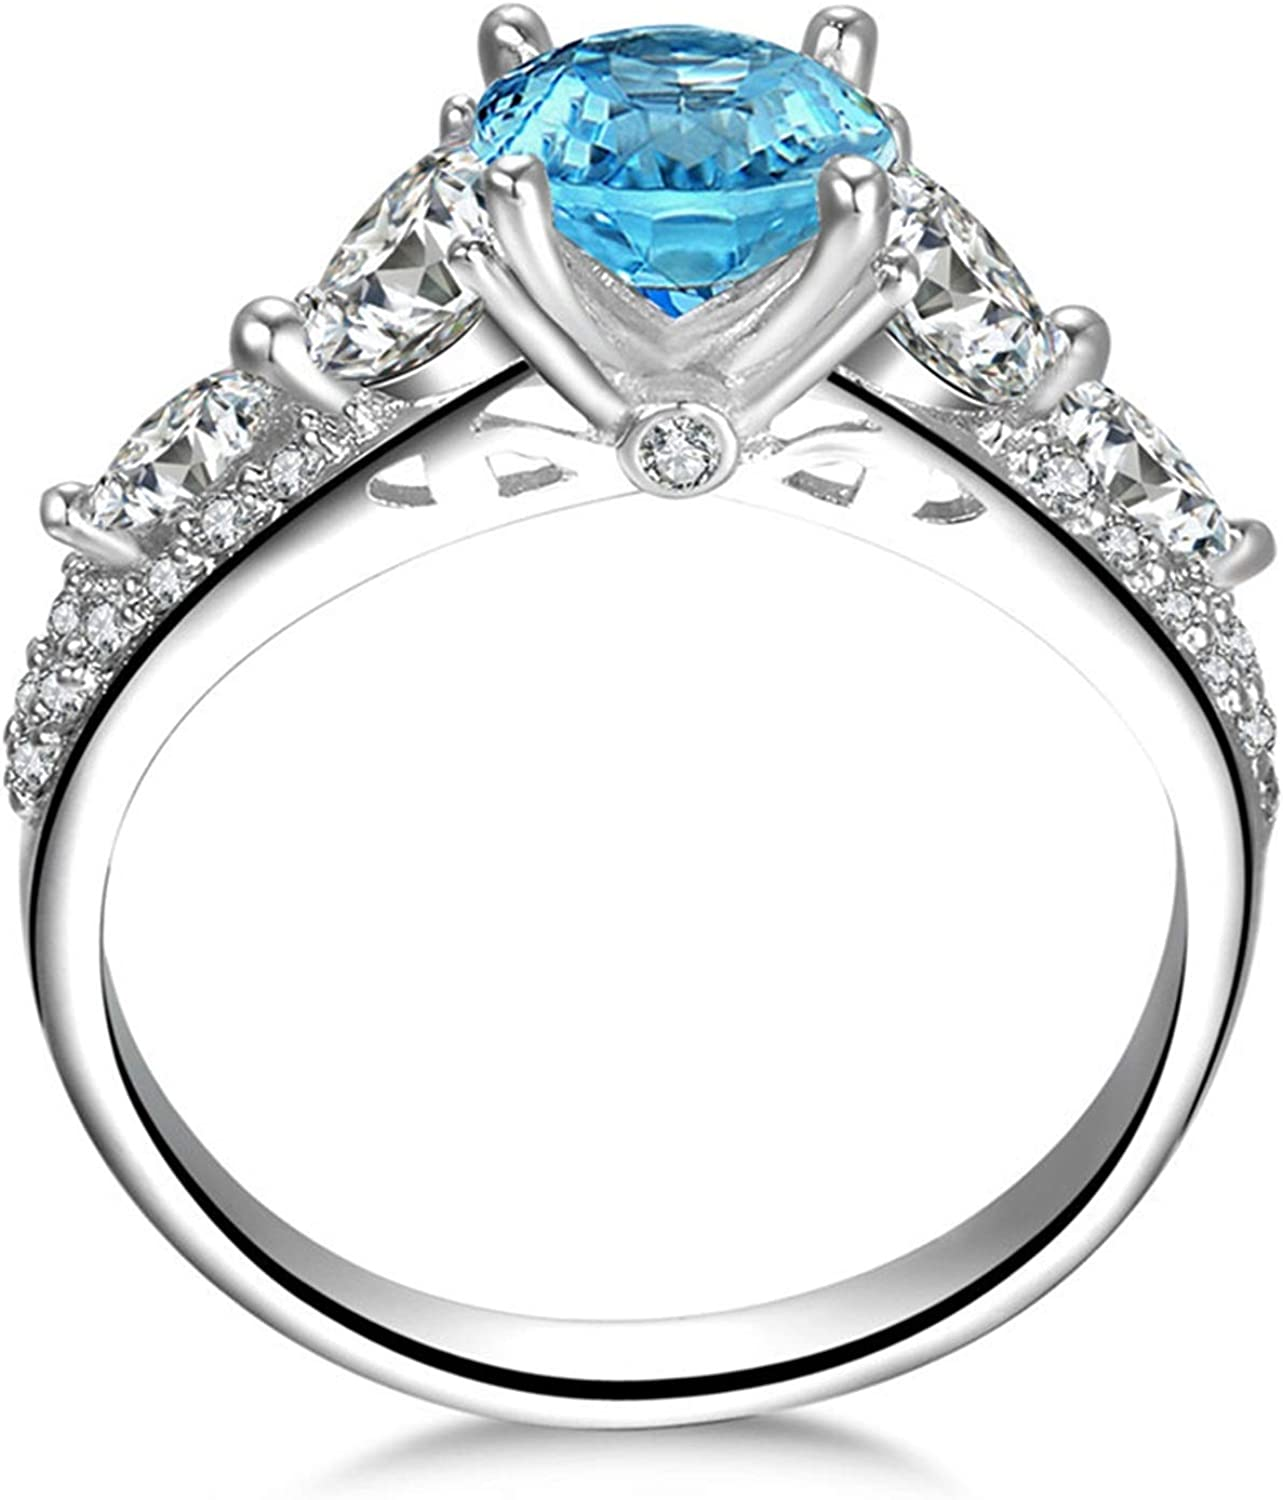 AMDXD Jewellery 925 Sterling Silver Rings Women Blue Round Cut Topaz Round Ring